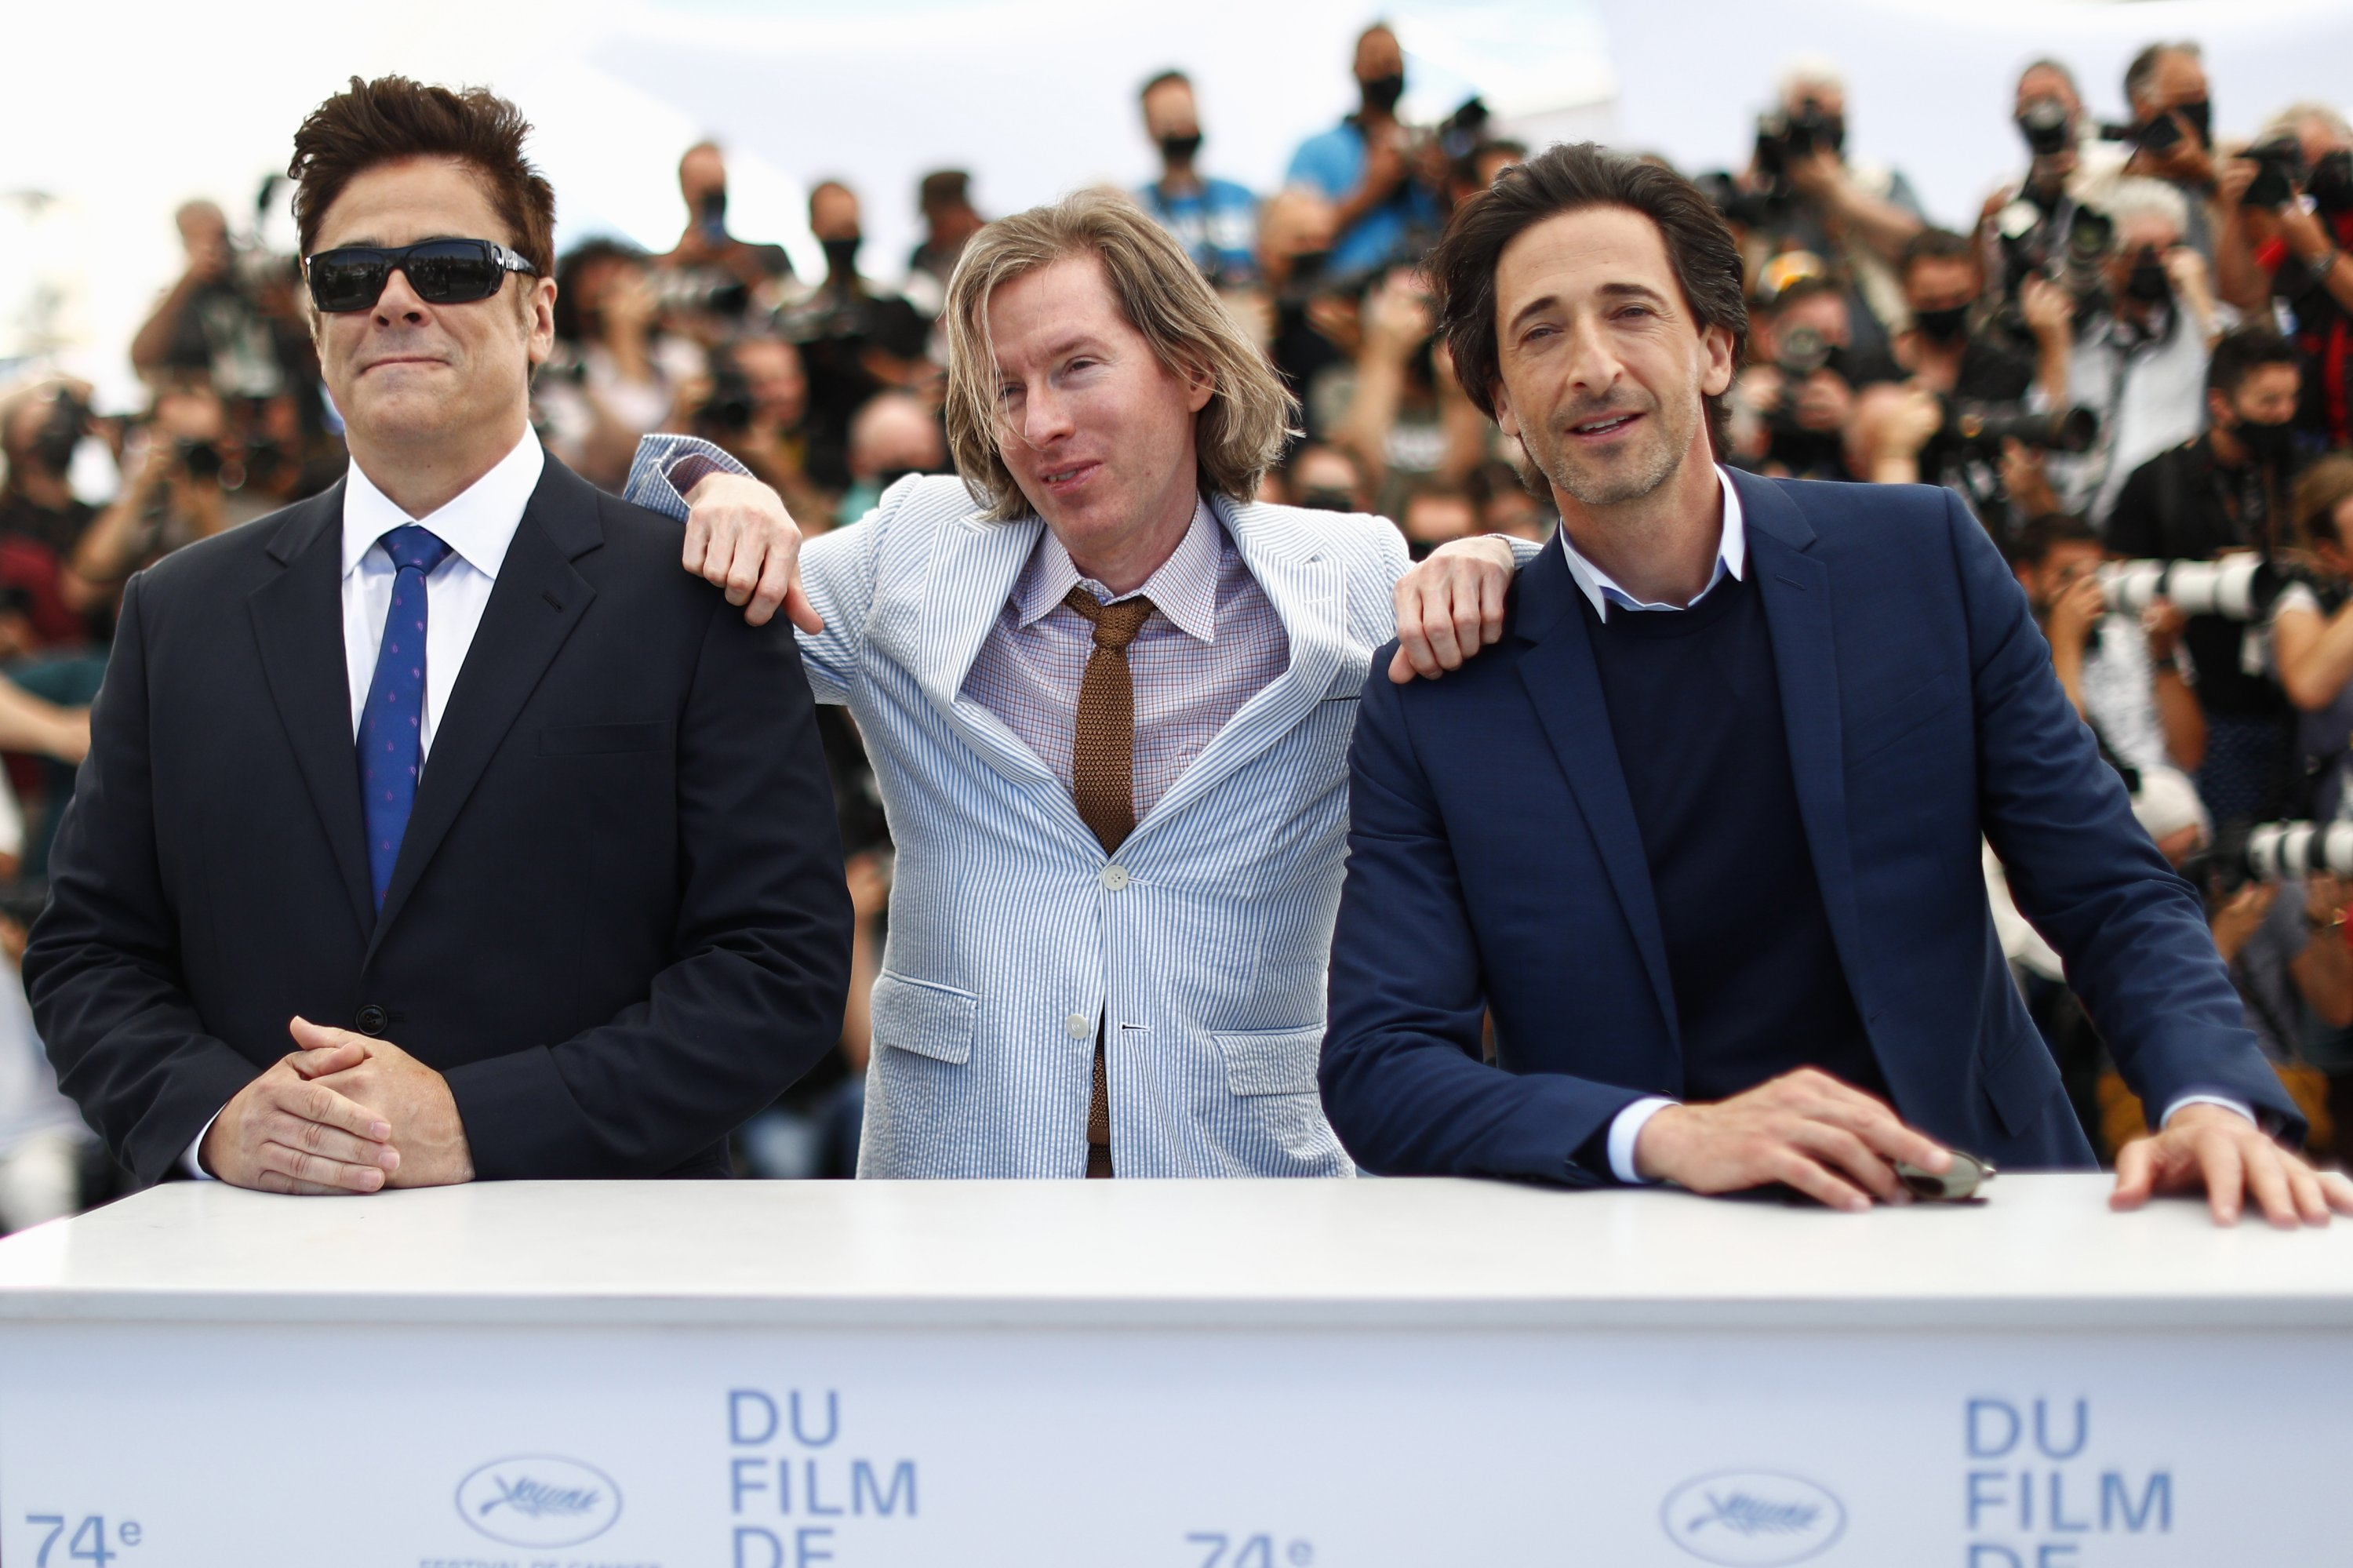 Director Wes Anderson (C) and cast members Benicio Del Toro (L) and Adrien Brody pose during a photocall for the film'The French Dispatch,' at the 74th Cannes Film Festival inCannes, France, July 13, 2021. (Reuters Photo)